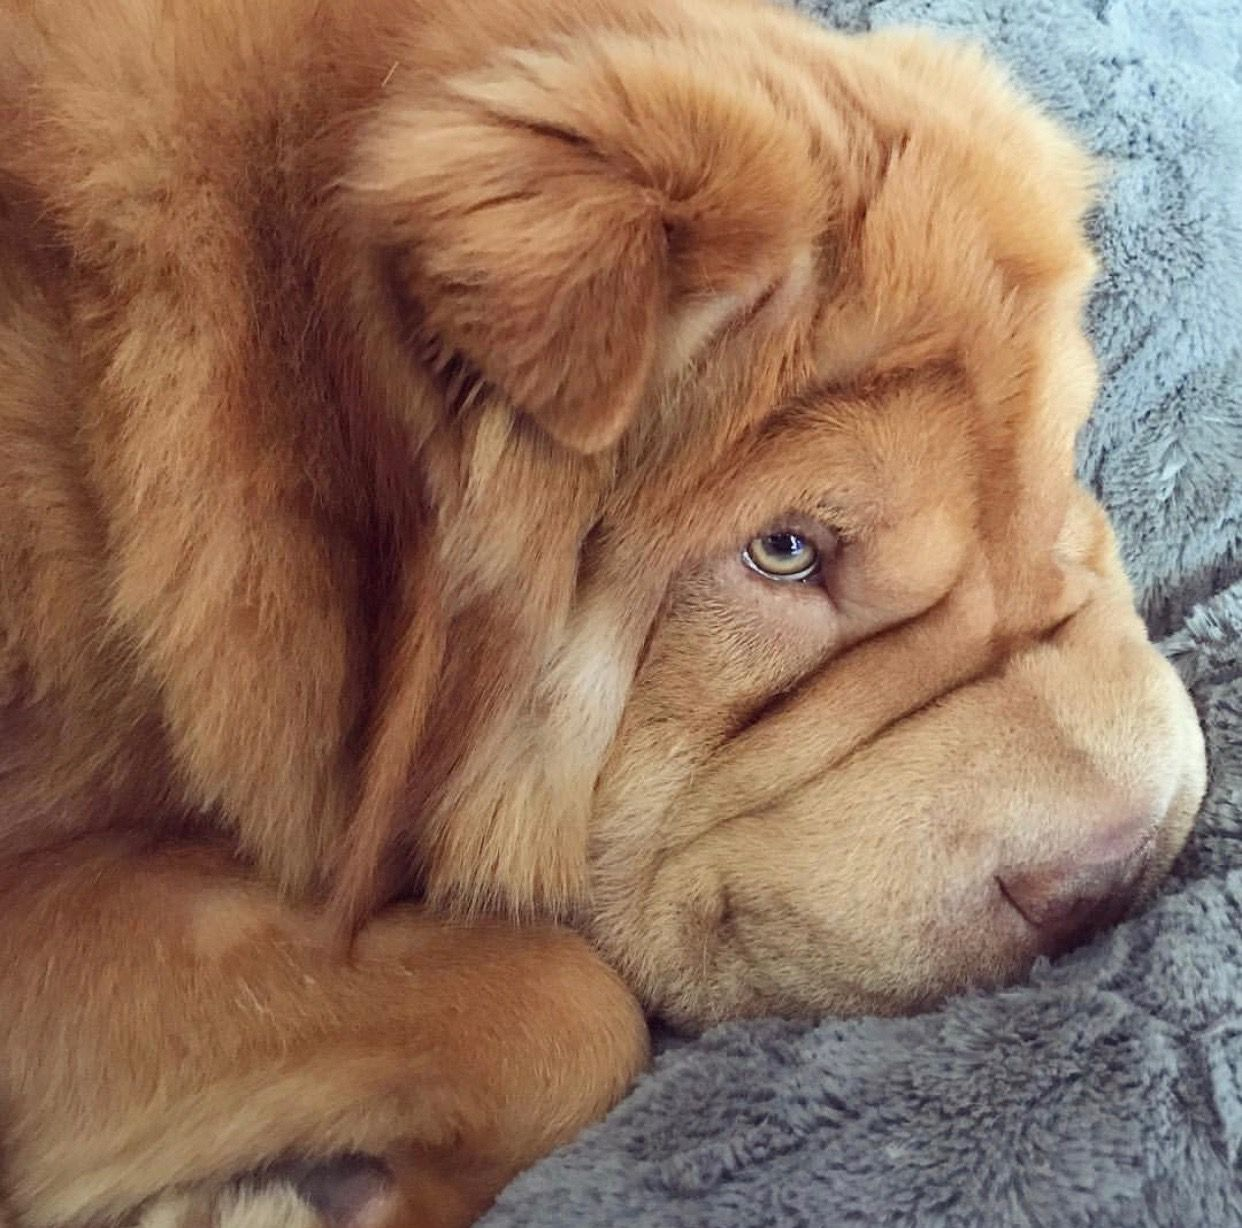 This Long Haired Shar Pei Puppy Is The Absolute Cutest Sweetest Thing Fluffy Dogs Cute Dogs Breeds Shar Pei Dog